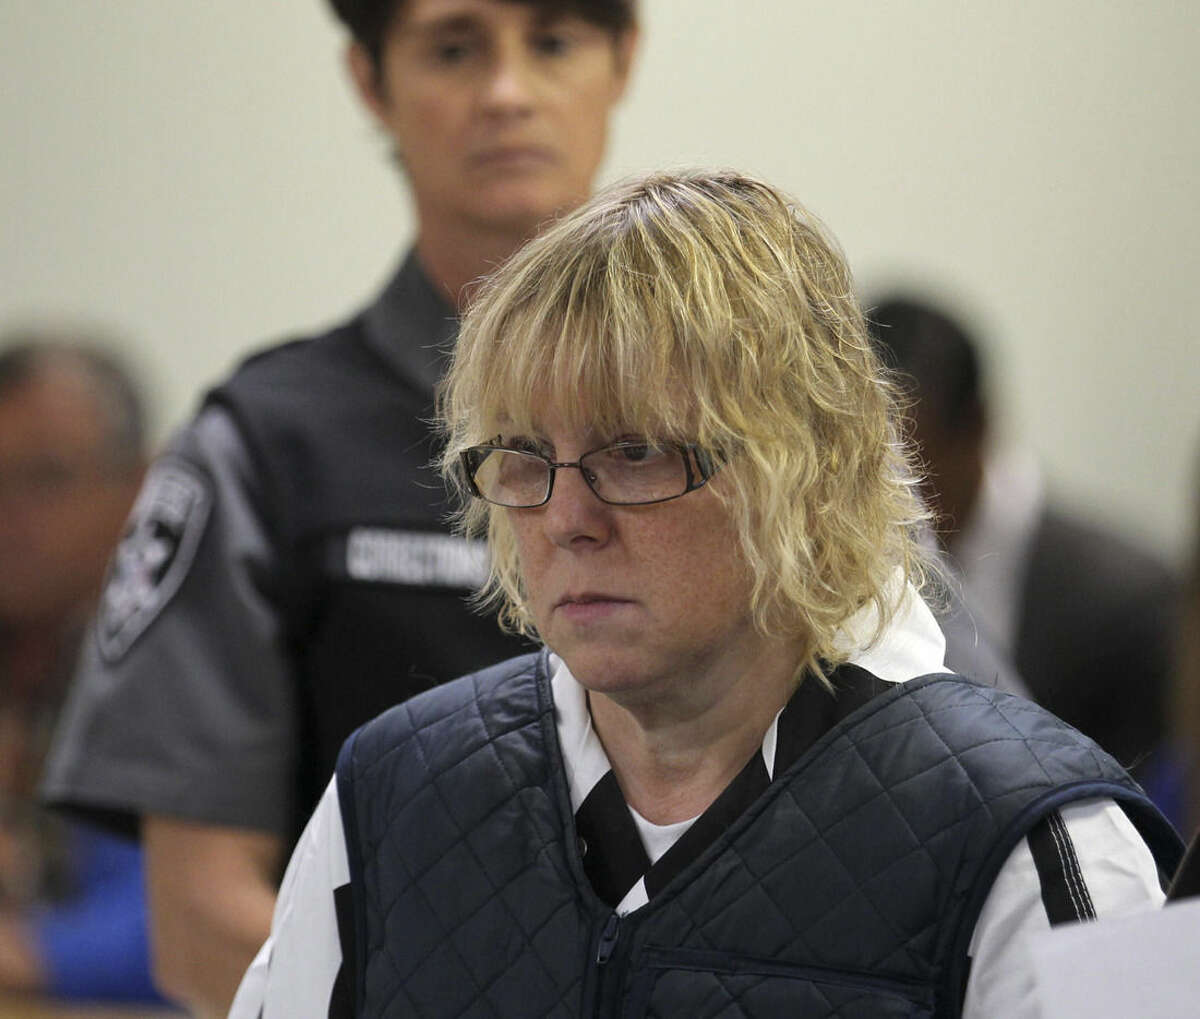 FILE - In this June 15, 2015, file photo, Joyce Mitchell appears before Judge Mark Rogers in Plattsburgh (N.Y.) City Court for a hearing. She is charged with helping Richard Matt and David Sweat escape from the Clinton Correctional Facility on June 6. While Richard Matt and David Sweat counted their final hours to freedom, prison tailor-shop instructor Mitchell was heading to a hospital with chest pains driven by a panic attack. She was leaving the hospital when she learned that Matt and Sweat were on the loose and that state police were looking for her and her husband, Lyle, a fellow industrial instructor at the prison. (G.N. Miller/NY Post via AP, Pool, File)